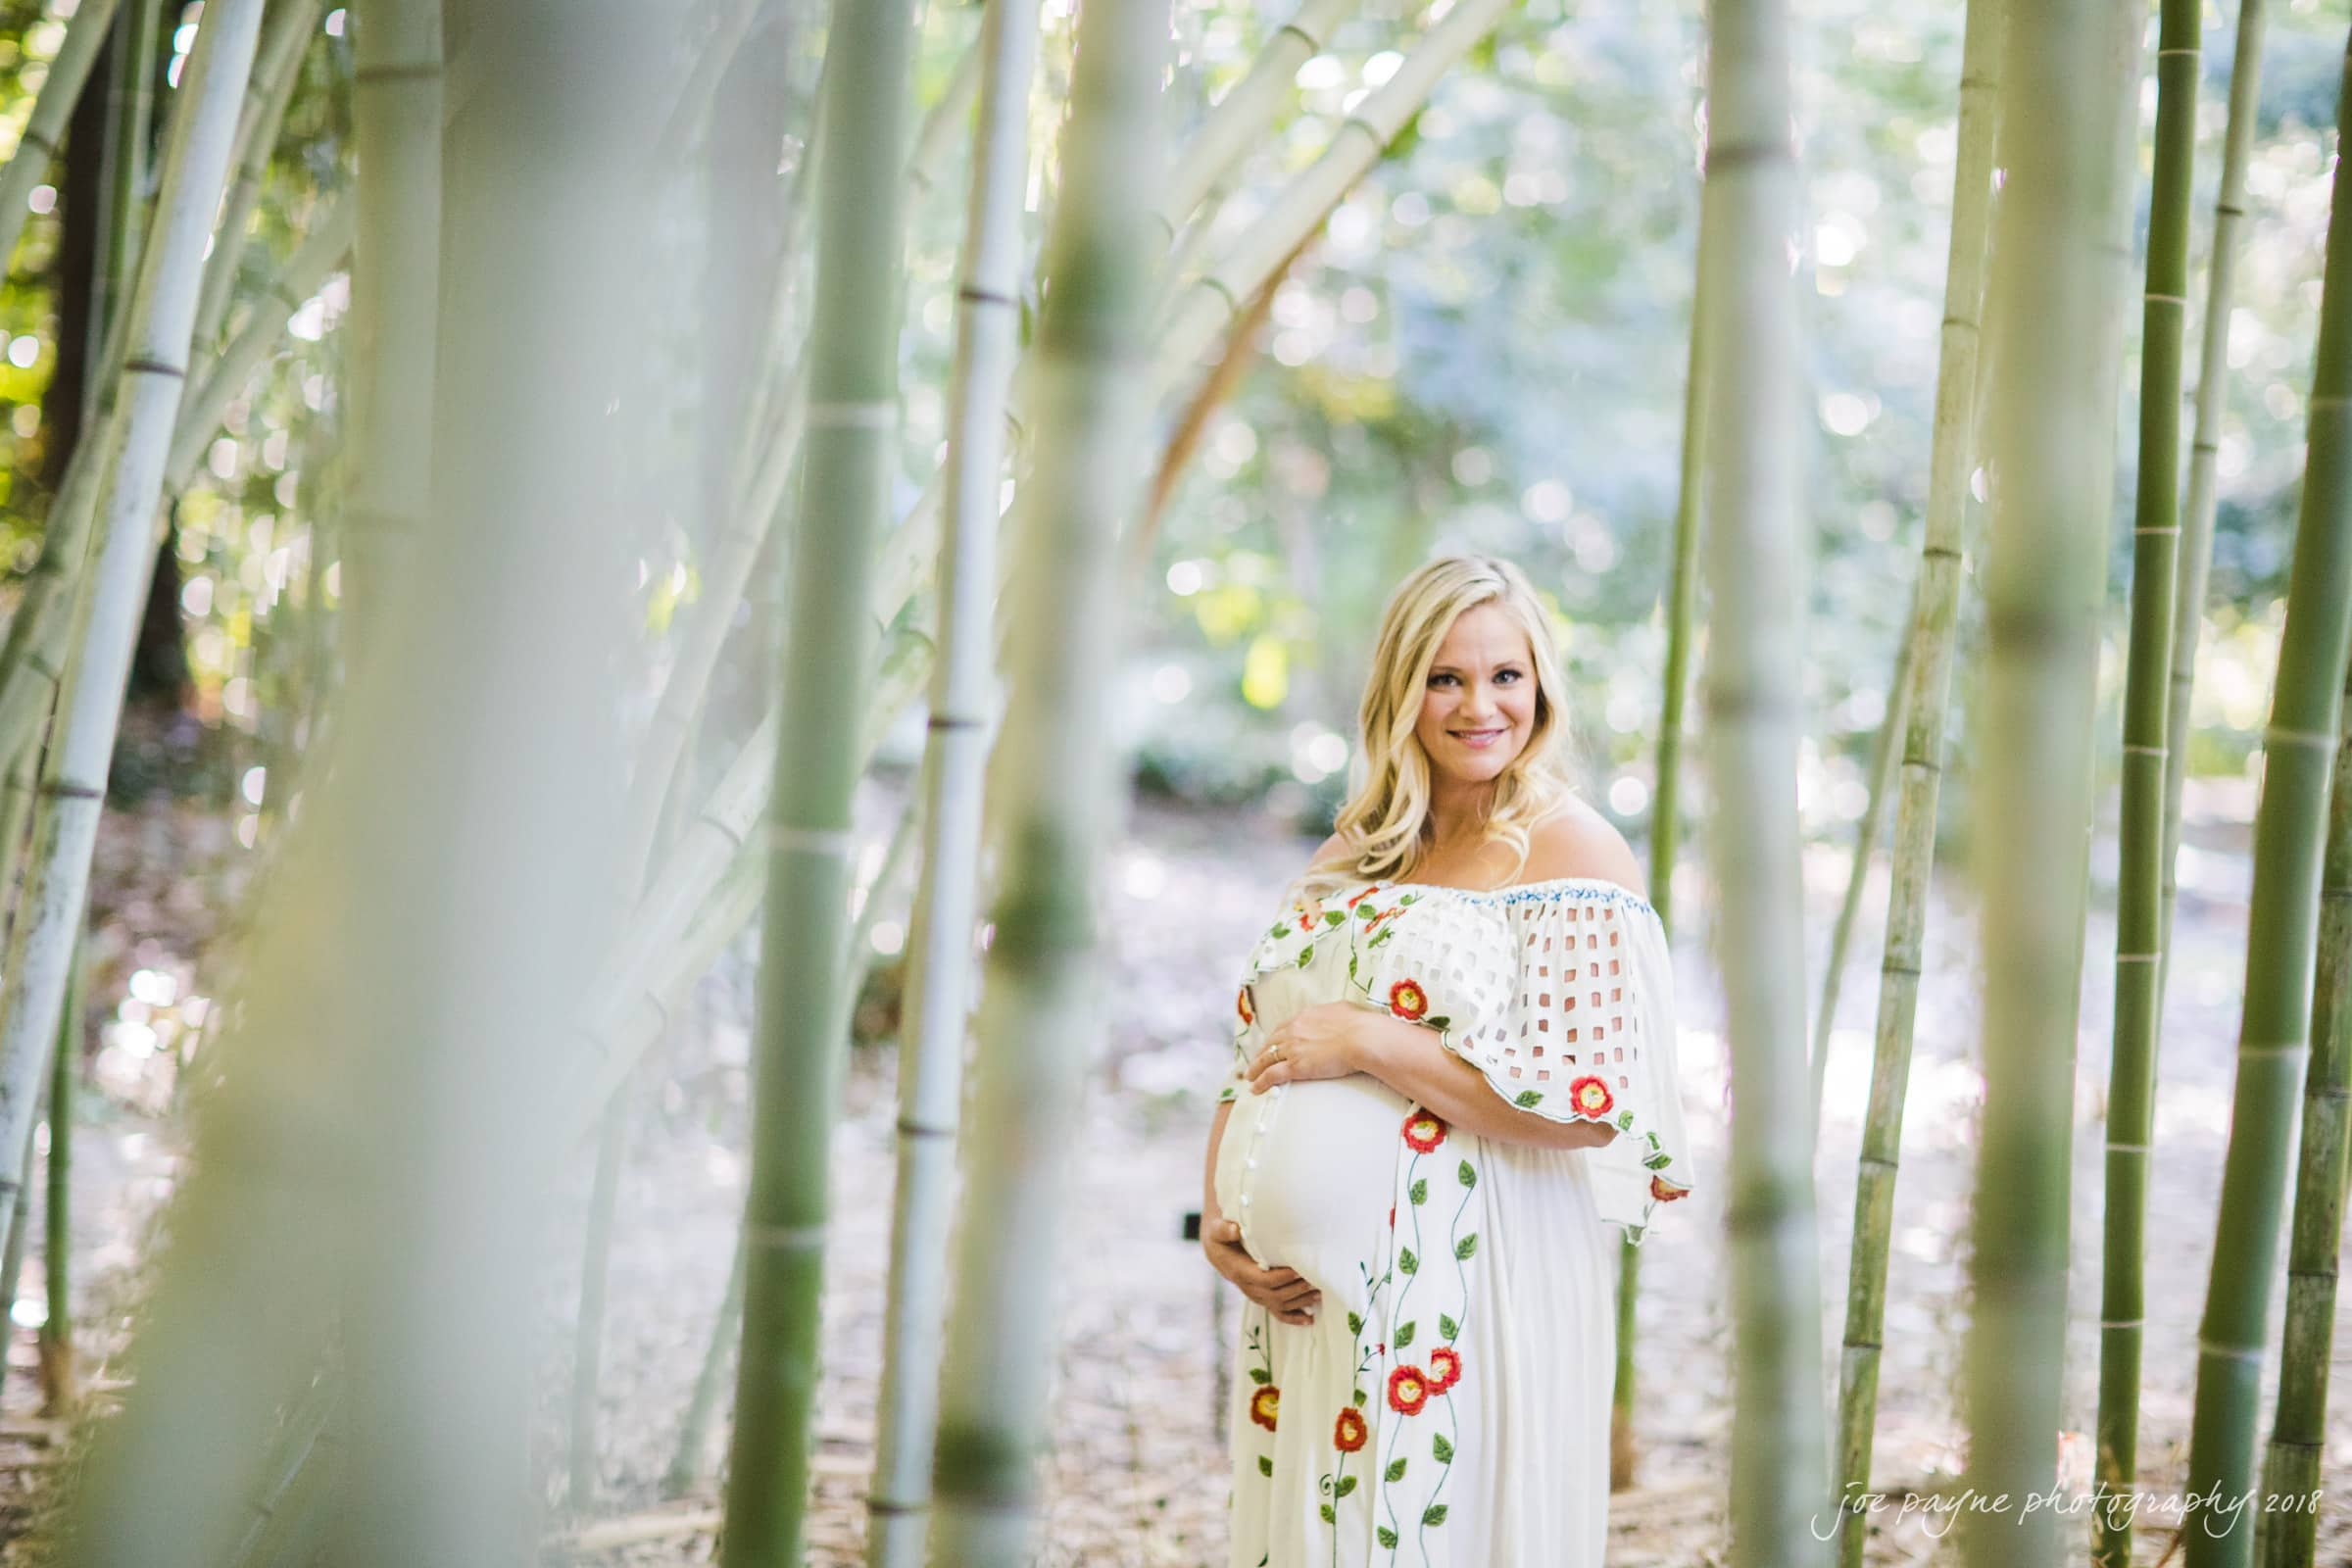 aleigh-Maternity-Photographer-Hallie-Cullen-2 duke gardens maternity session - hallie & cullen